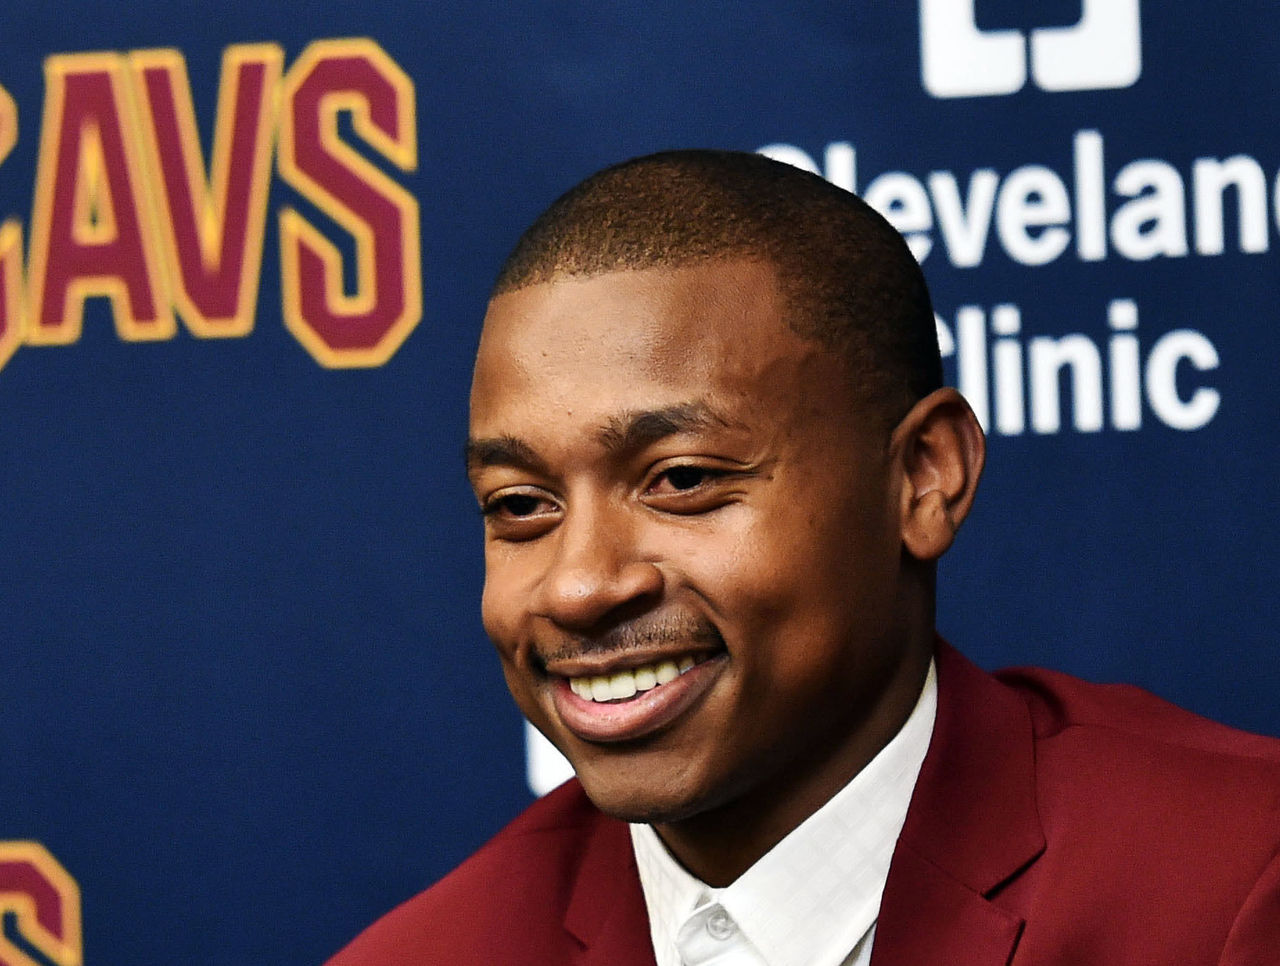 Cropped 2017 09 07t173232z 1956842367 nocid rtrmadp 3 nba cleveland cavaliers press conference